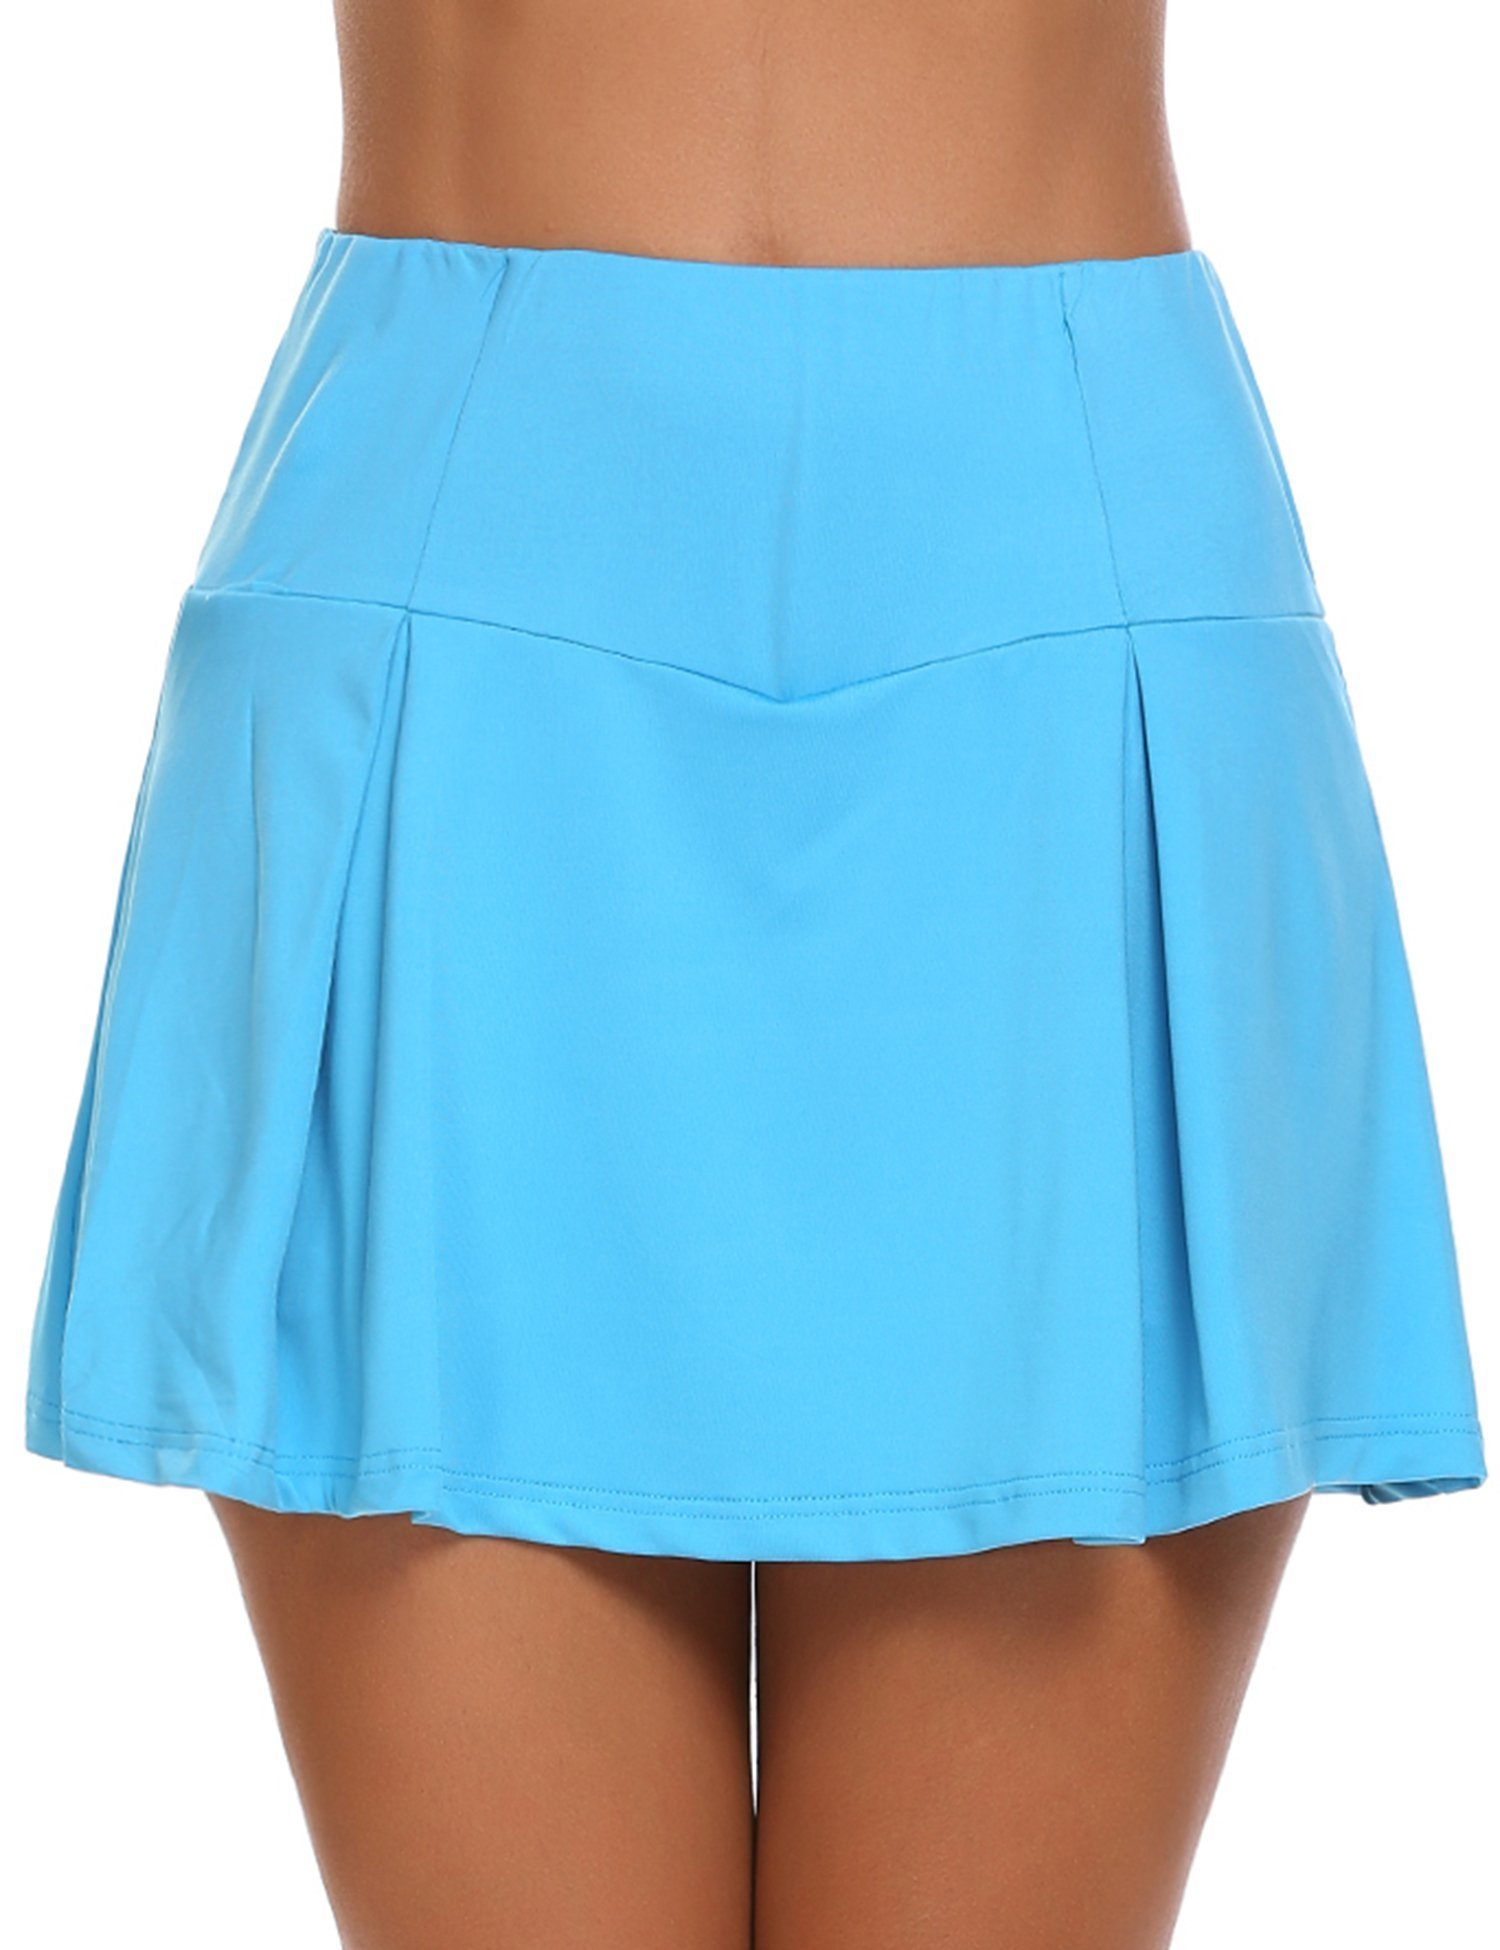 Womens Basic Casual Sports Skorts Gym Tennis Skirt with Shorts, Blue, Small